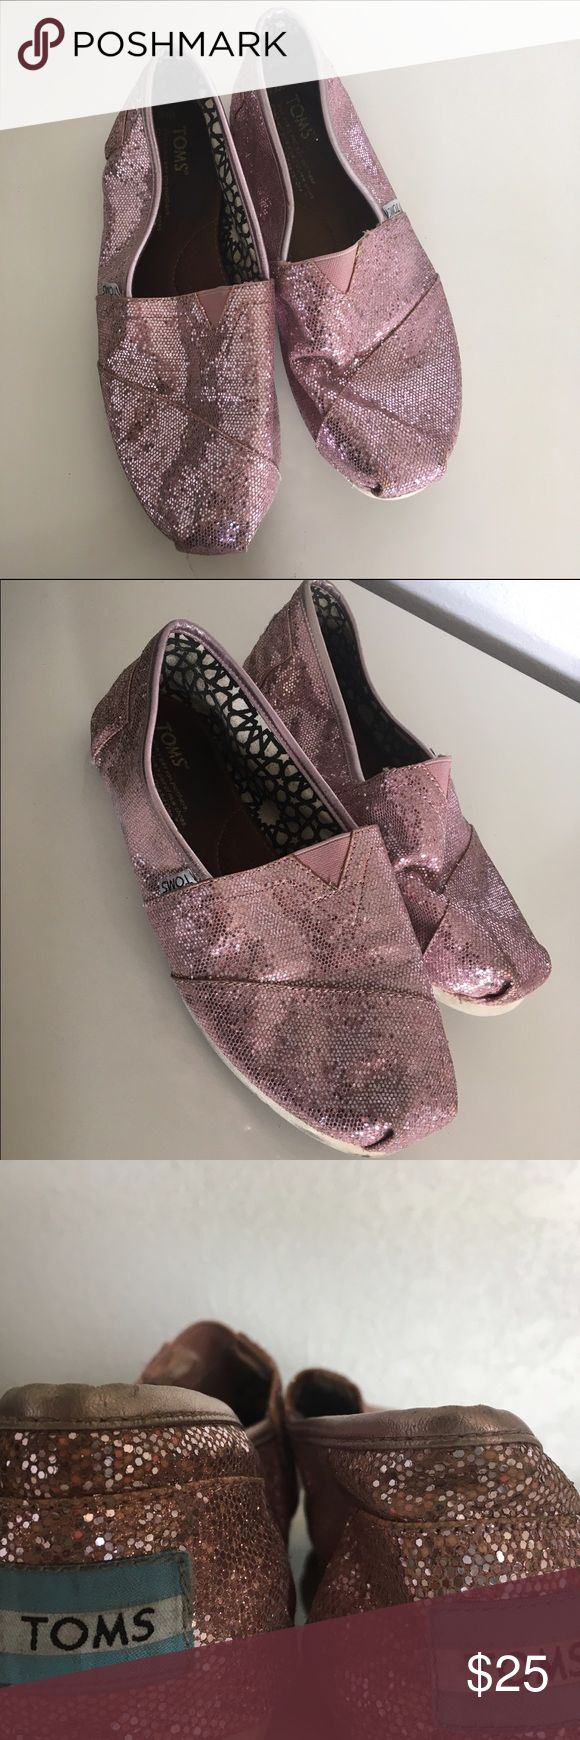 Pink Glitter Toms 💓✨ Light Pink Glitter Toms✨💓 TOMS Shoes Flats & Loafers